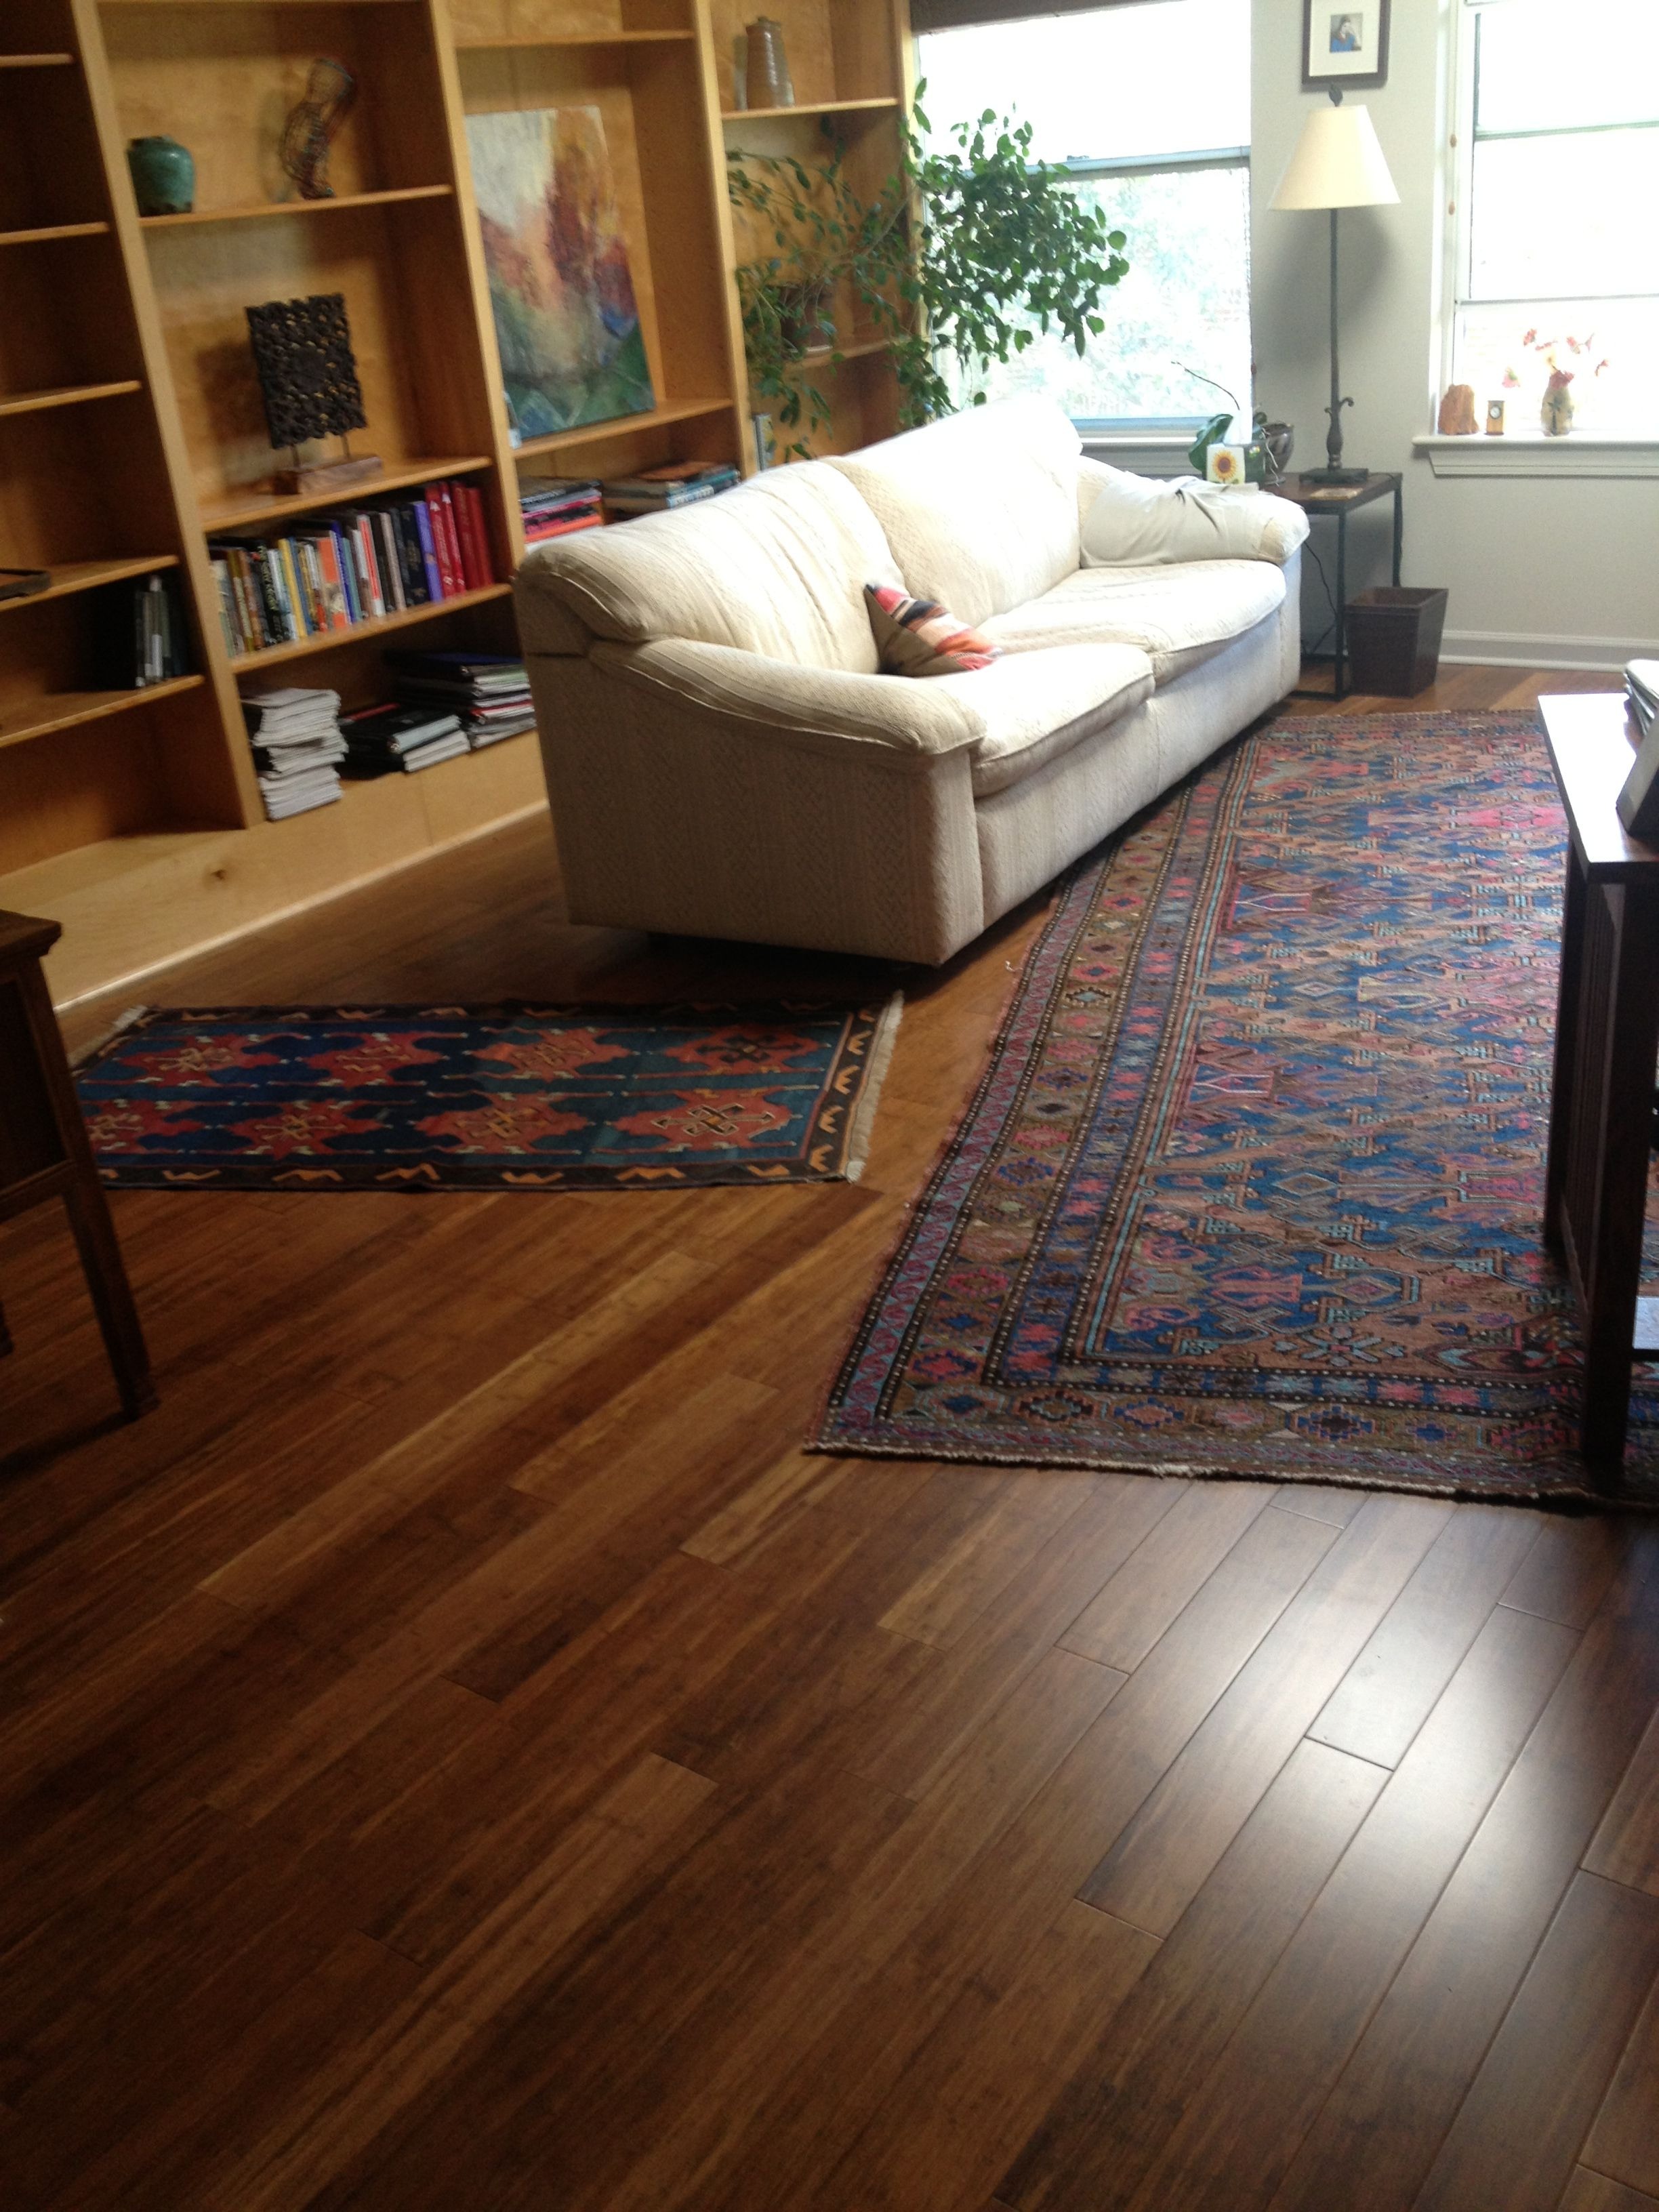 Teragren Synergy Strand Woven Bamboo In Chestnut Helps Make This Unc S Professor S Office A Little More Welc Home Living Room Flooring Projects Home And Living